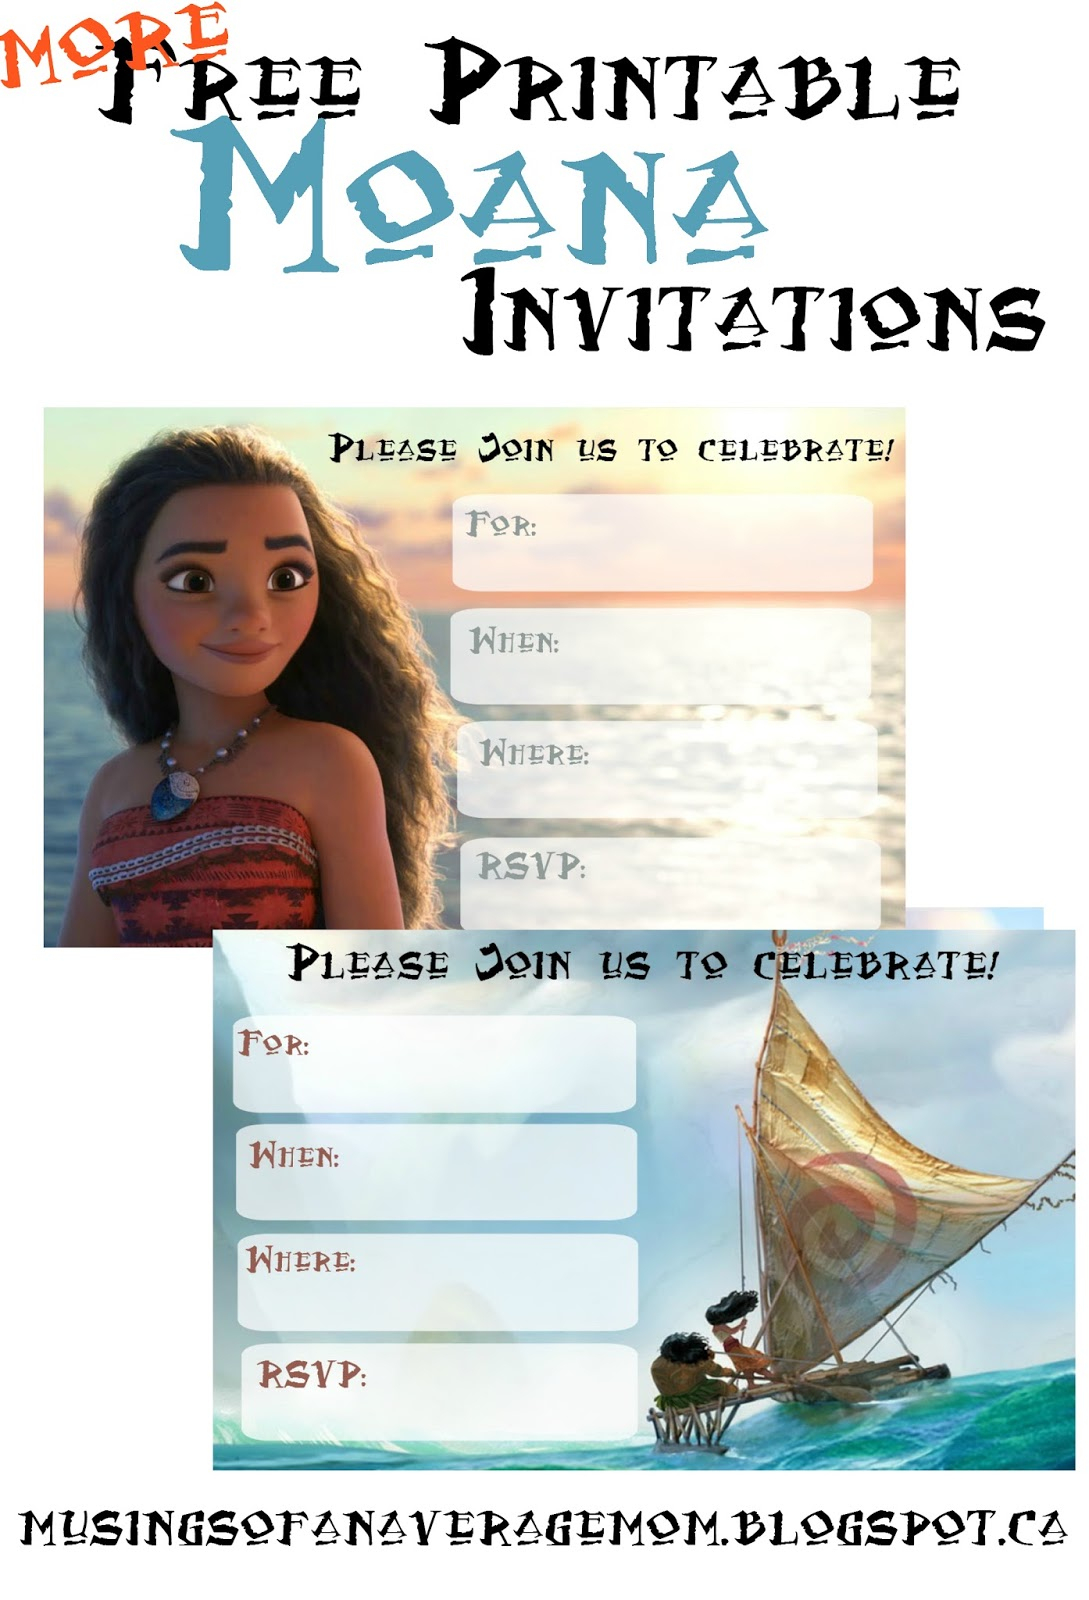 Musings Of An Average Mom: Free Printable Moana Invitations 2 - Free Moana Printable Invitations